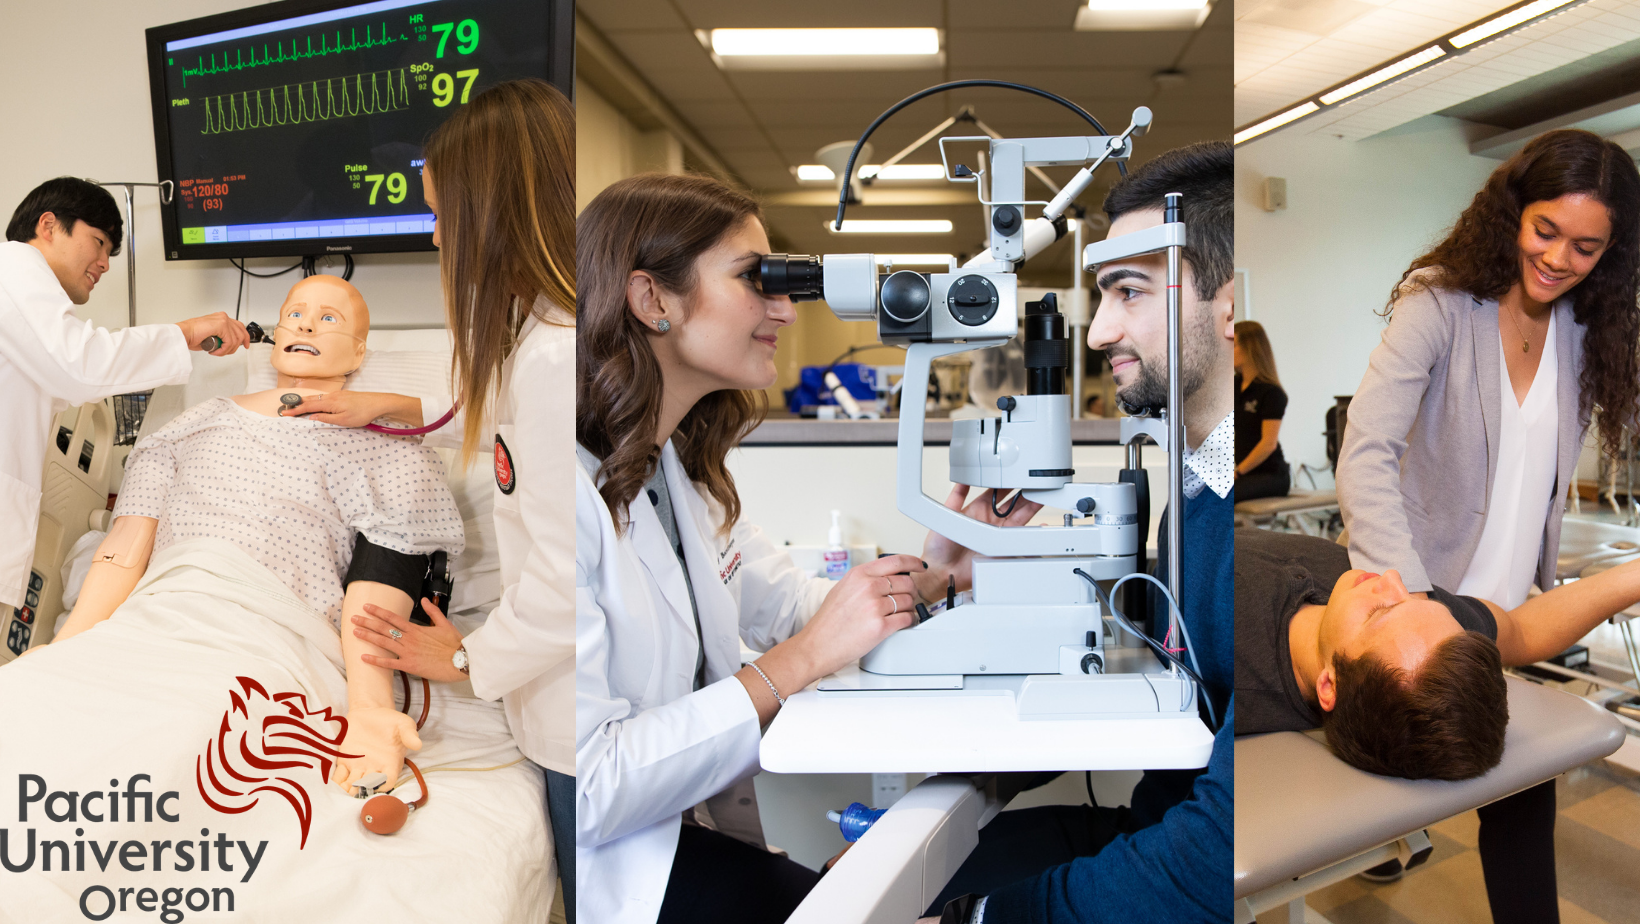 3 photos of students working in the healthcare field